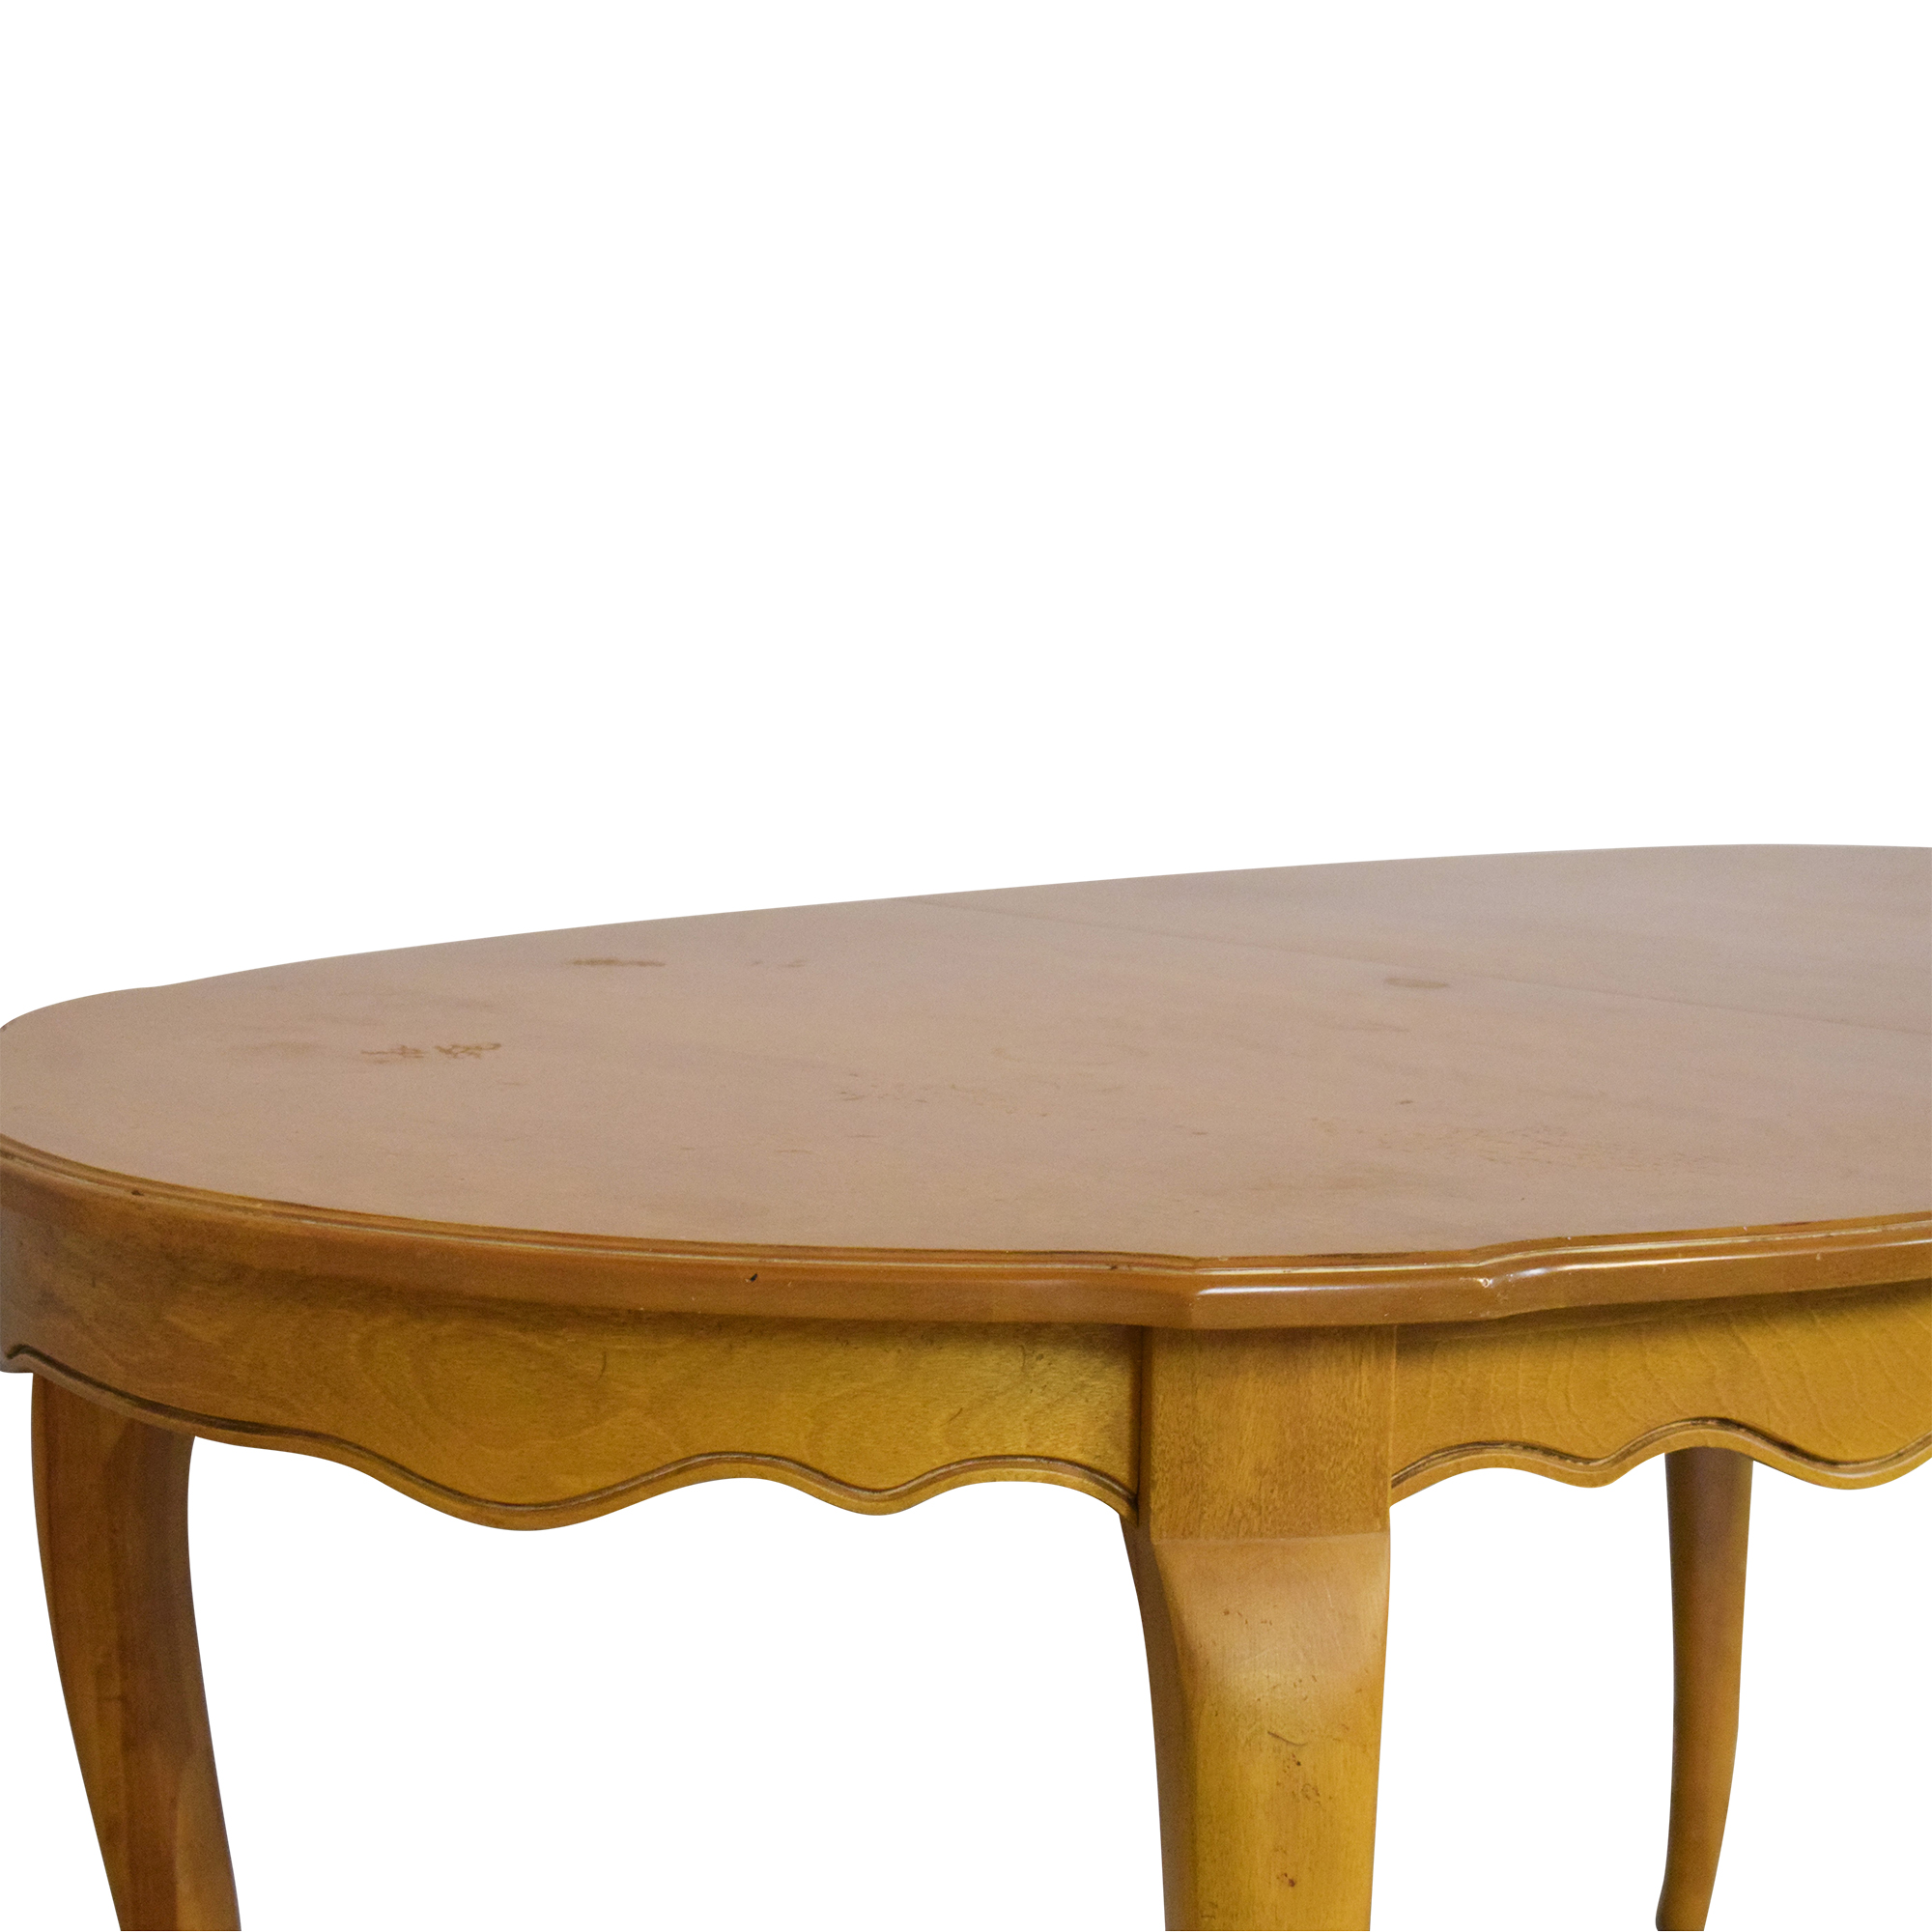 buy Ethan Allen Ethan Allen Country French Oval Extendable Dining Table online